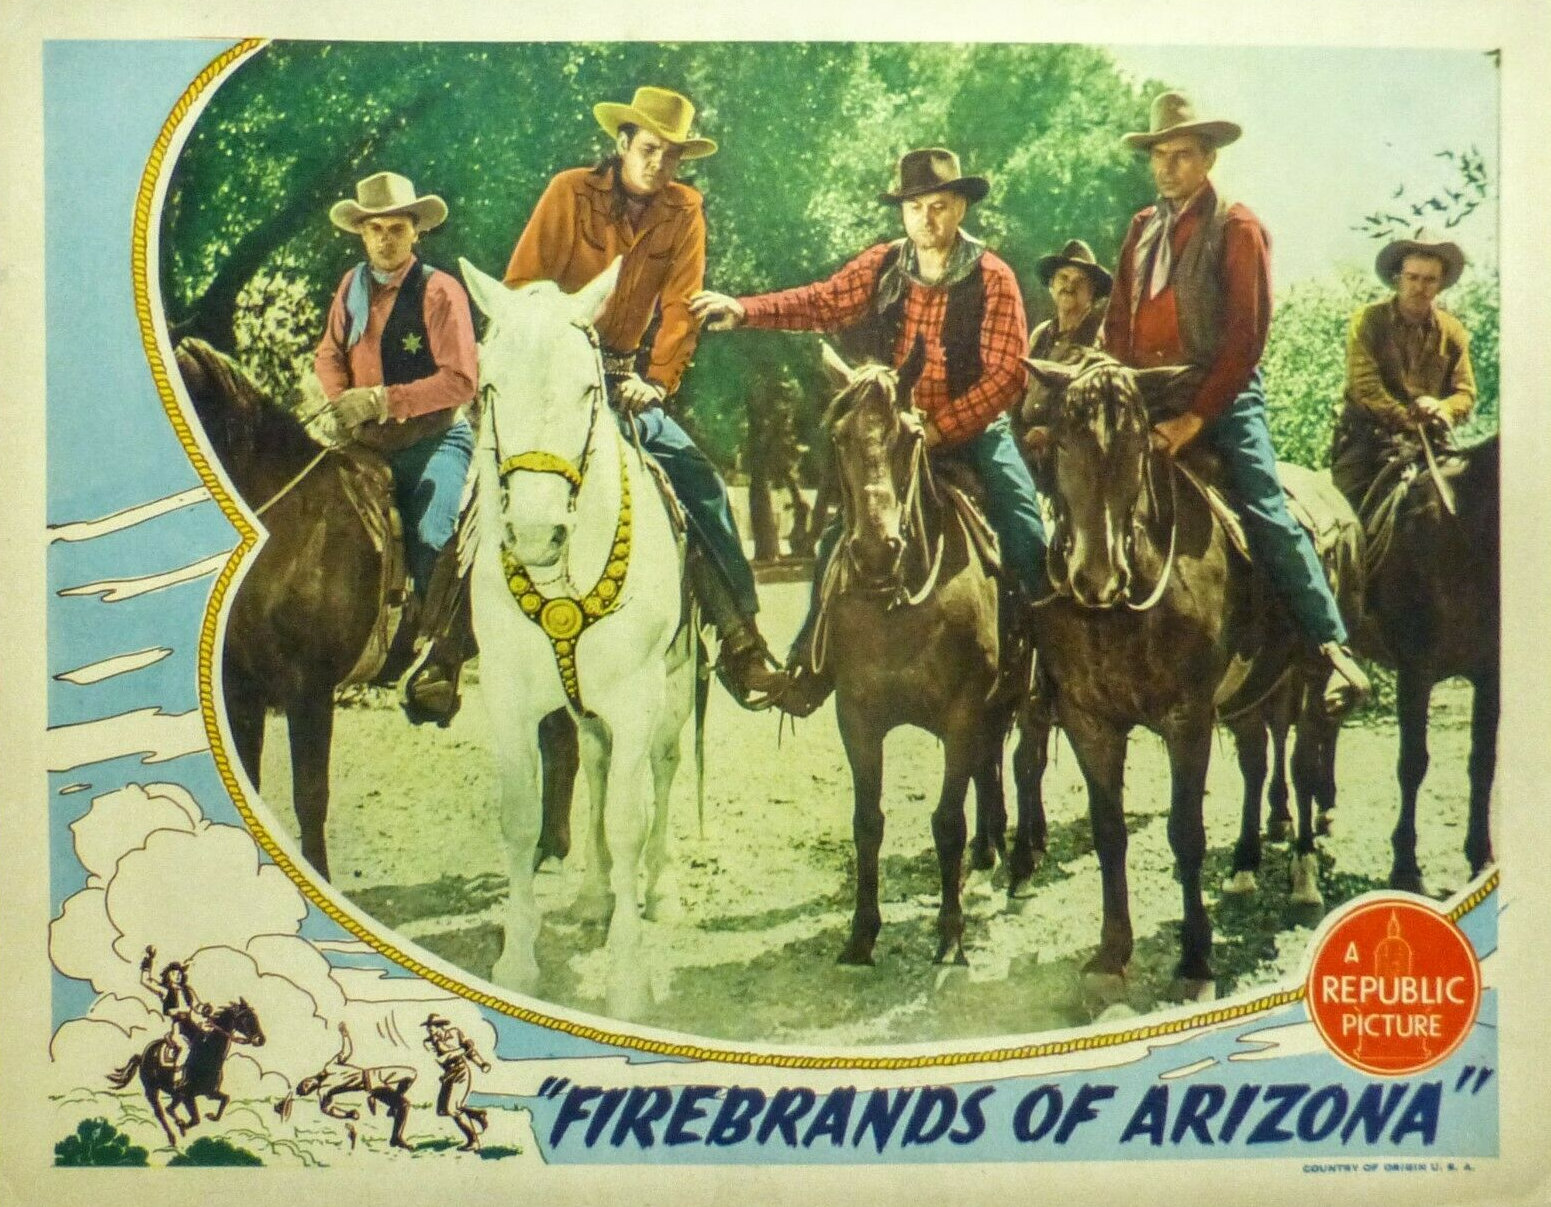 Firebrands of Arizona (1944)